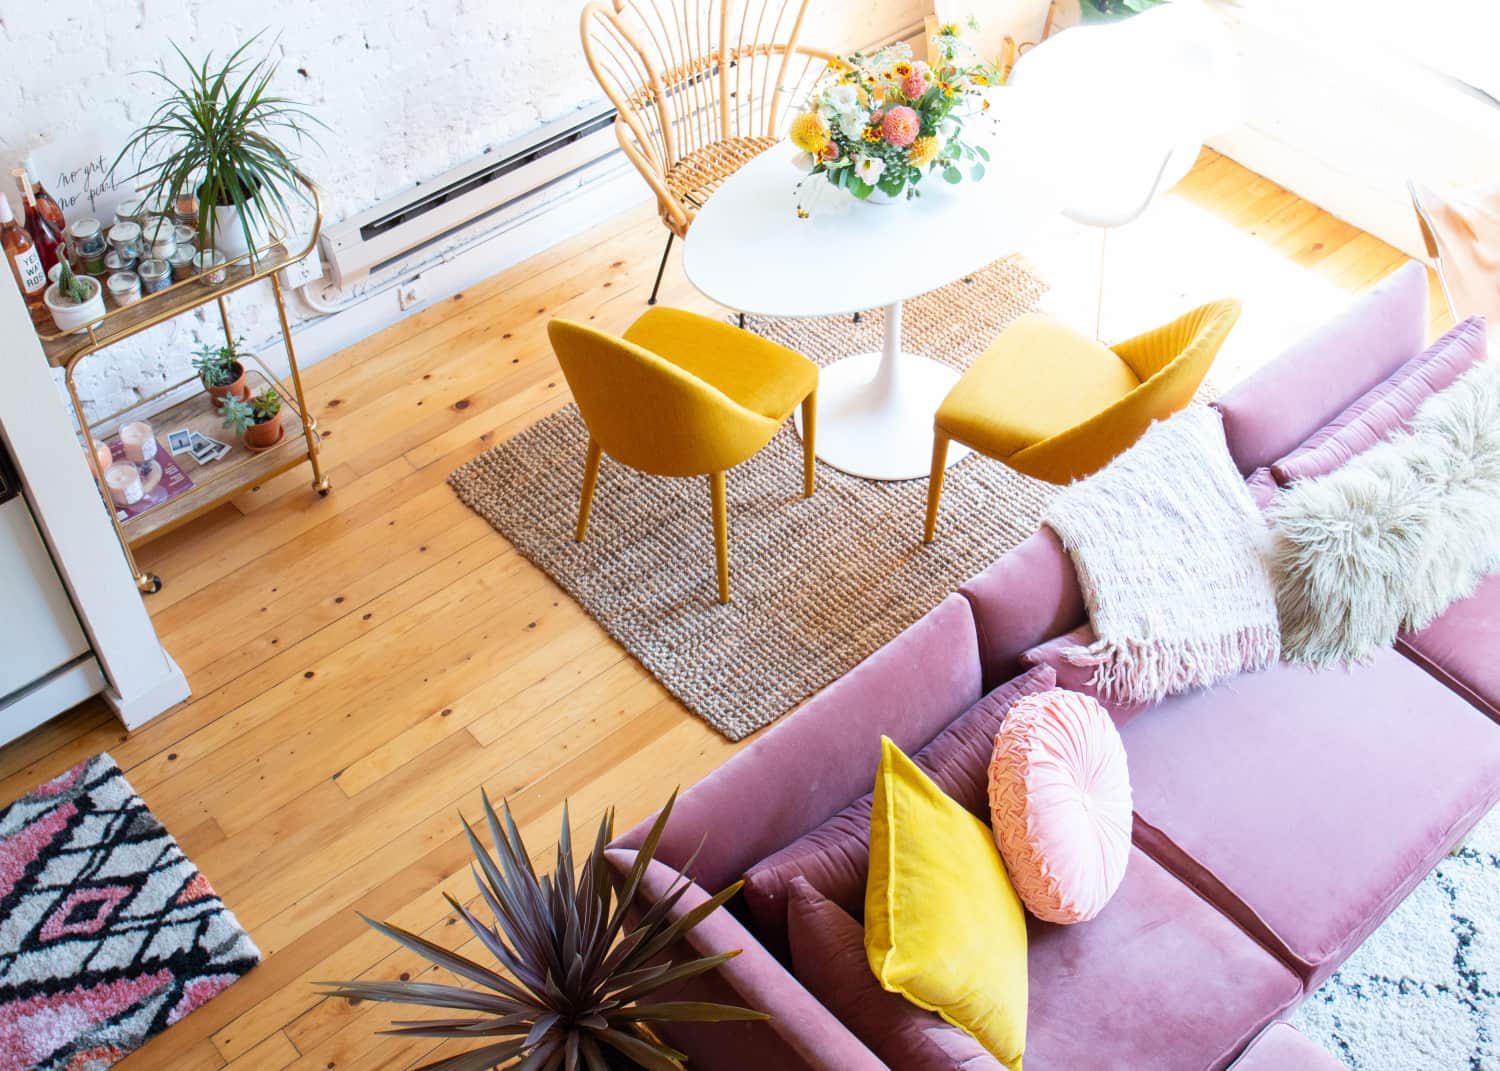 How to Decorate a Small Space the Right Way, According to Interior Designers